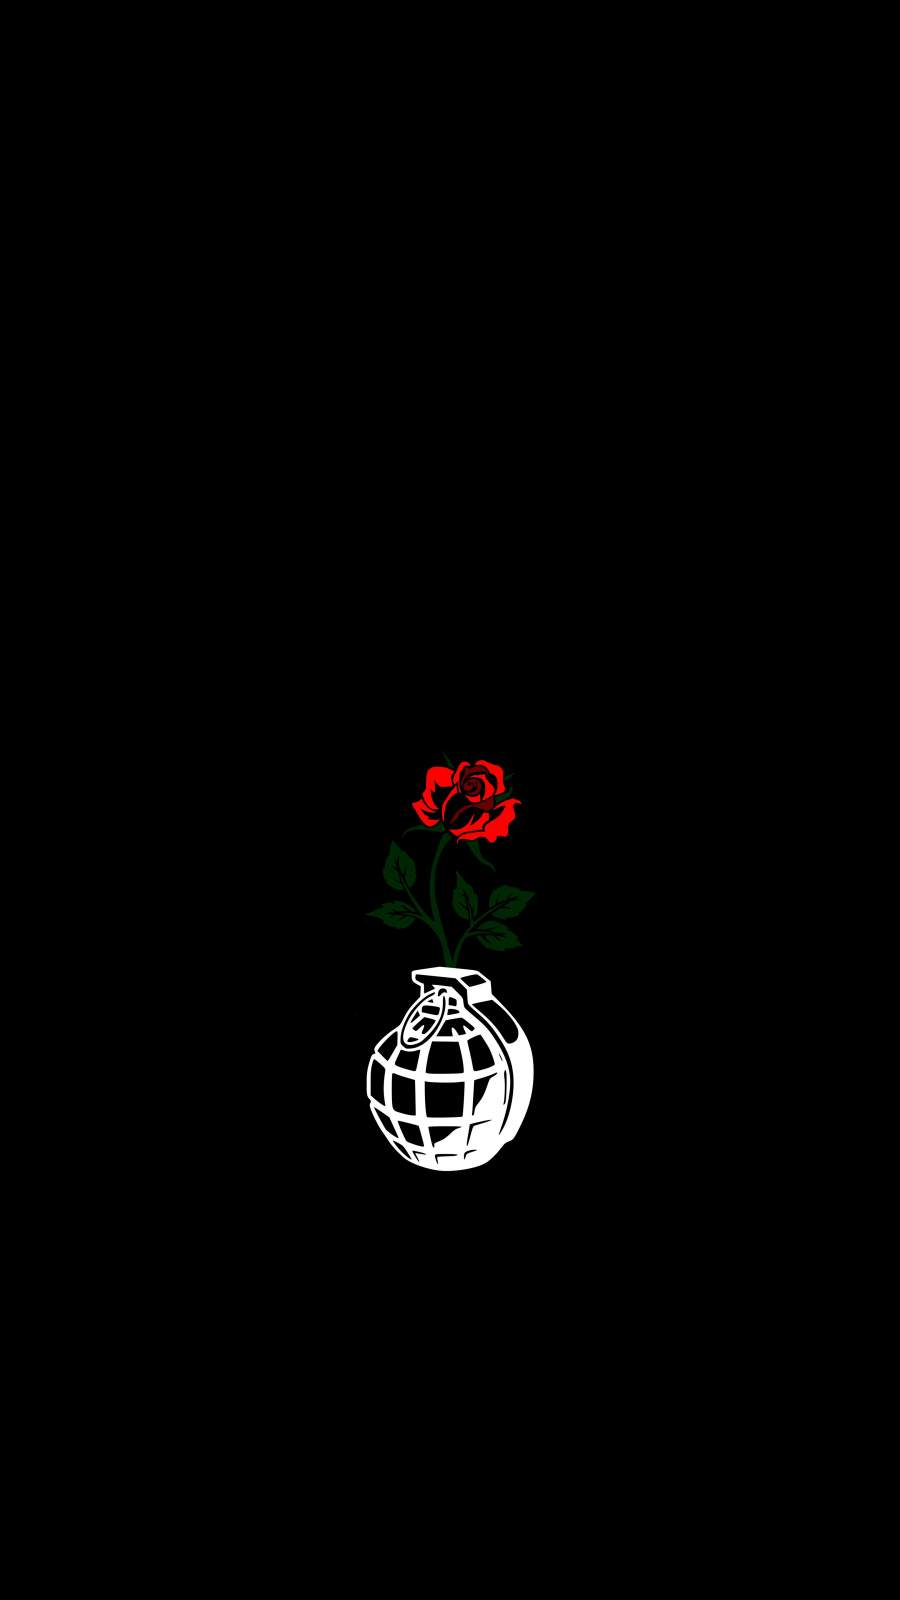 Flower Grenade iPhone Wallpaper